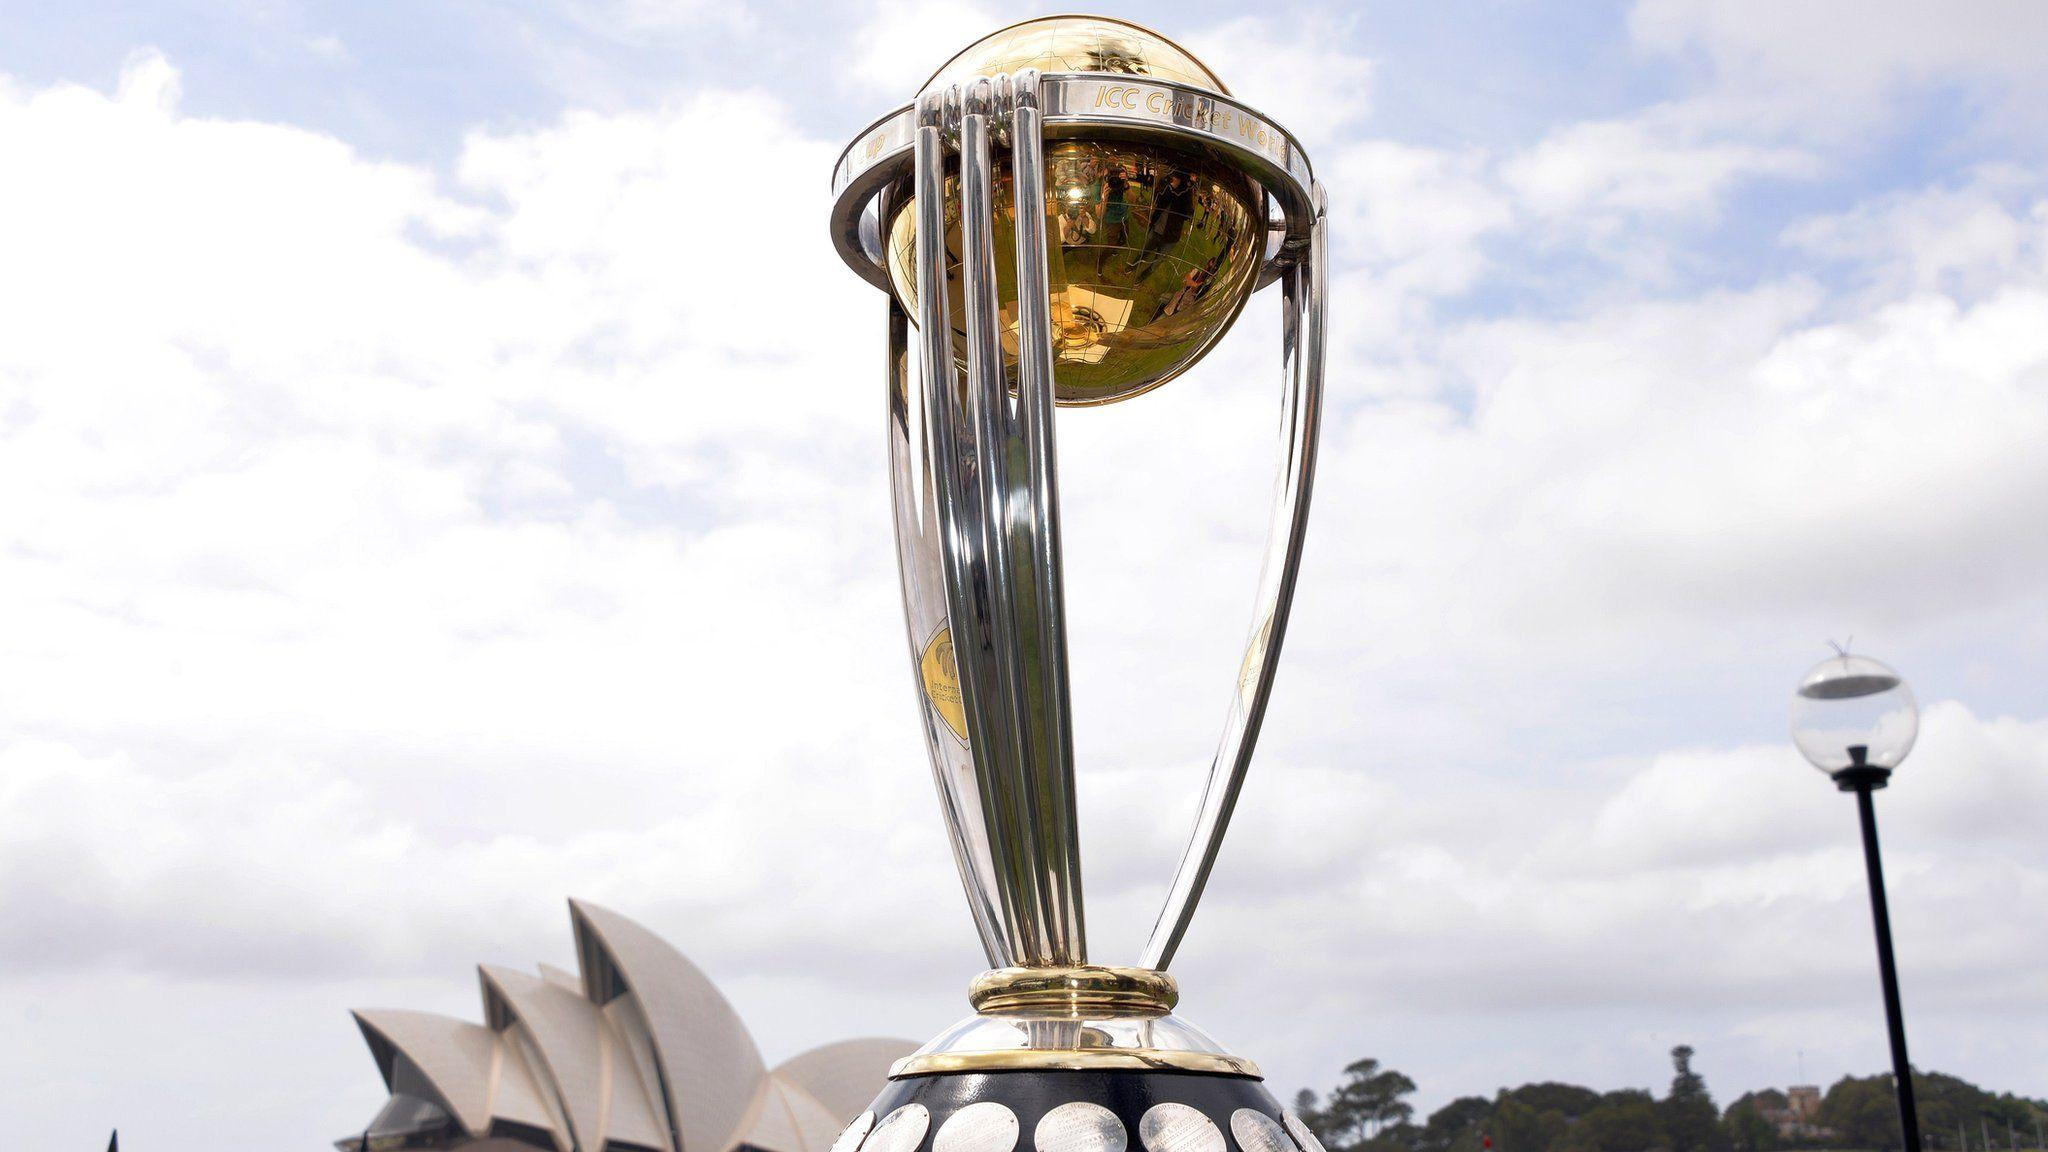 2019 Cricket World Cup Wallpapers - Wallpaper Cave